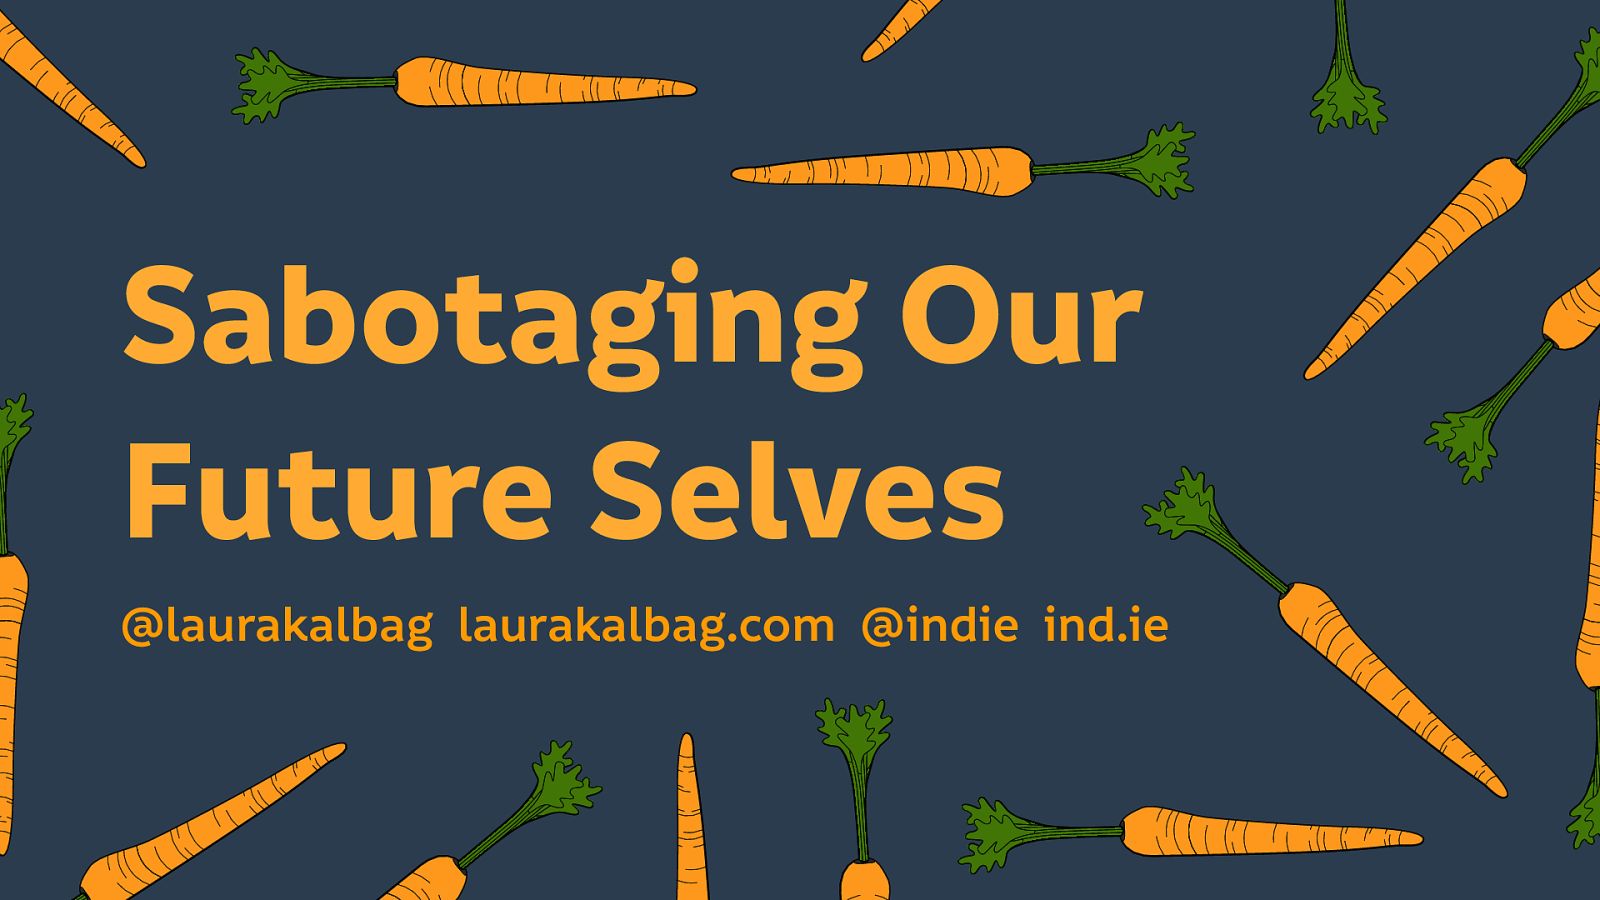 Sabotaging Our Future Selves by Laura Kalbag